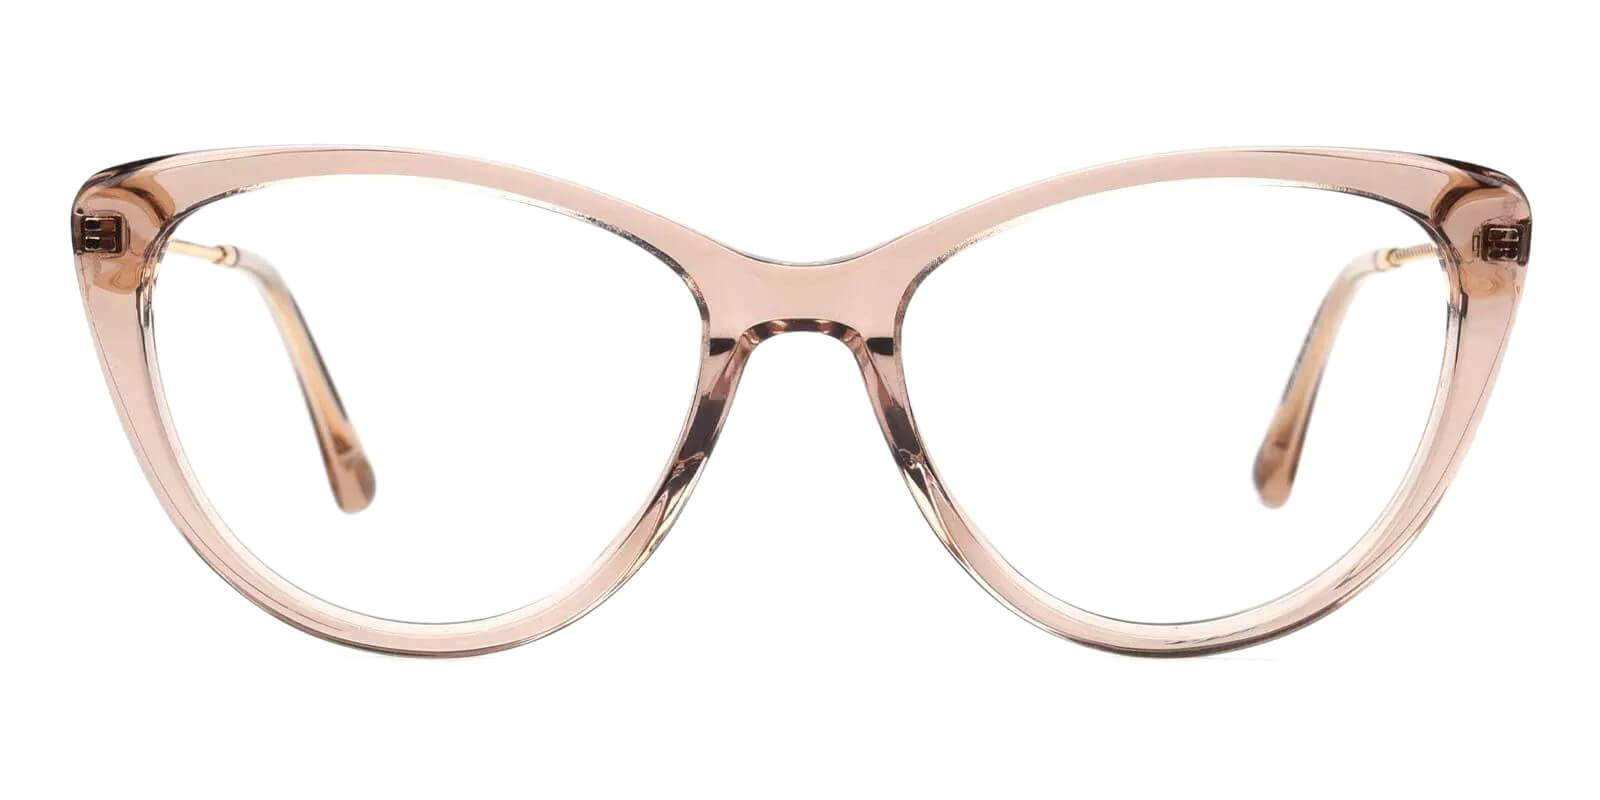 Satin Pink Acetate , Metal Eyeglasses , Fashion , SpringHinges , UniversalBridgeFit Frames from ABBE Glasses